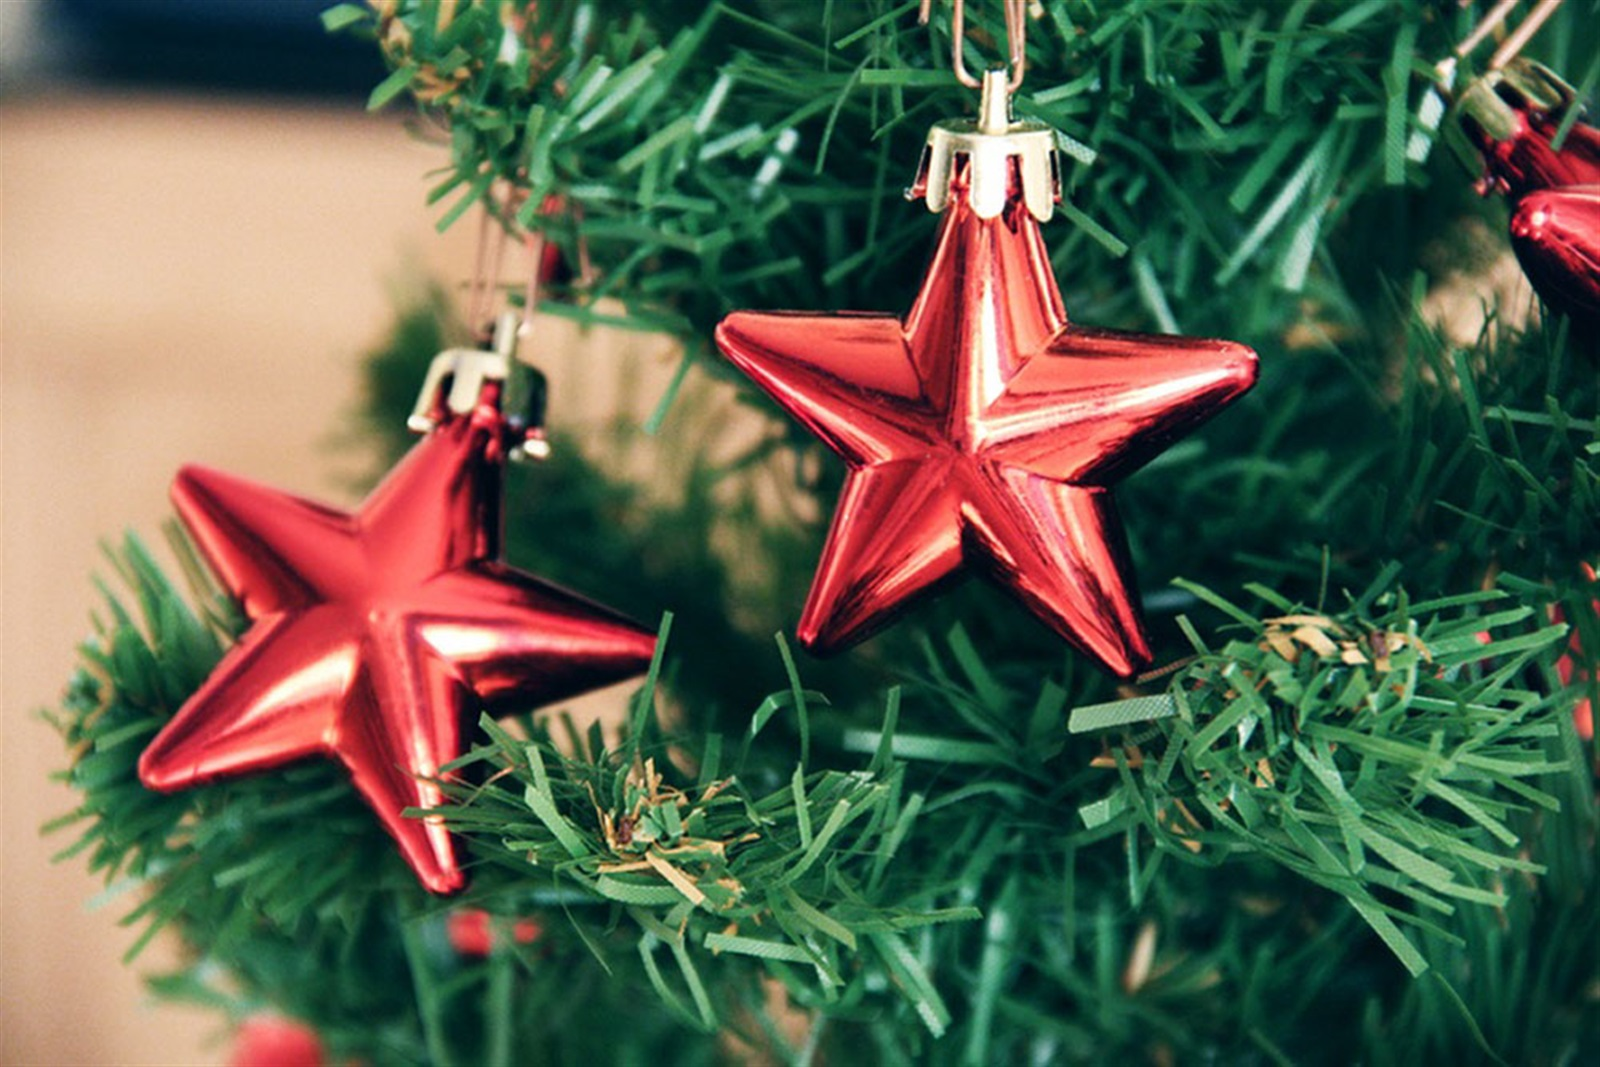 Efficient Employee Scheduling During the Holidays